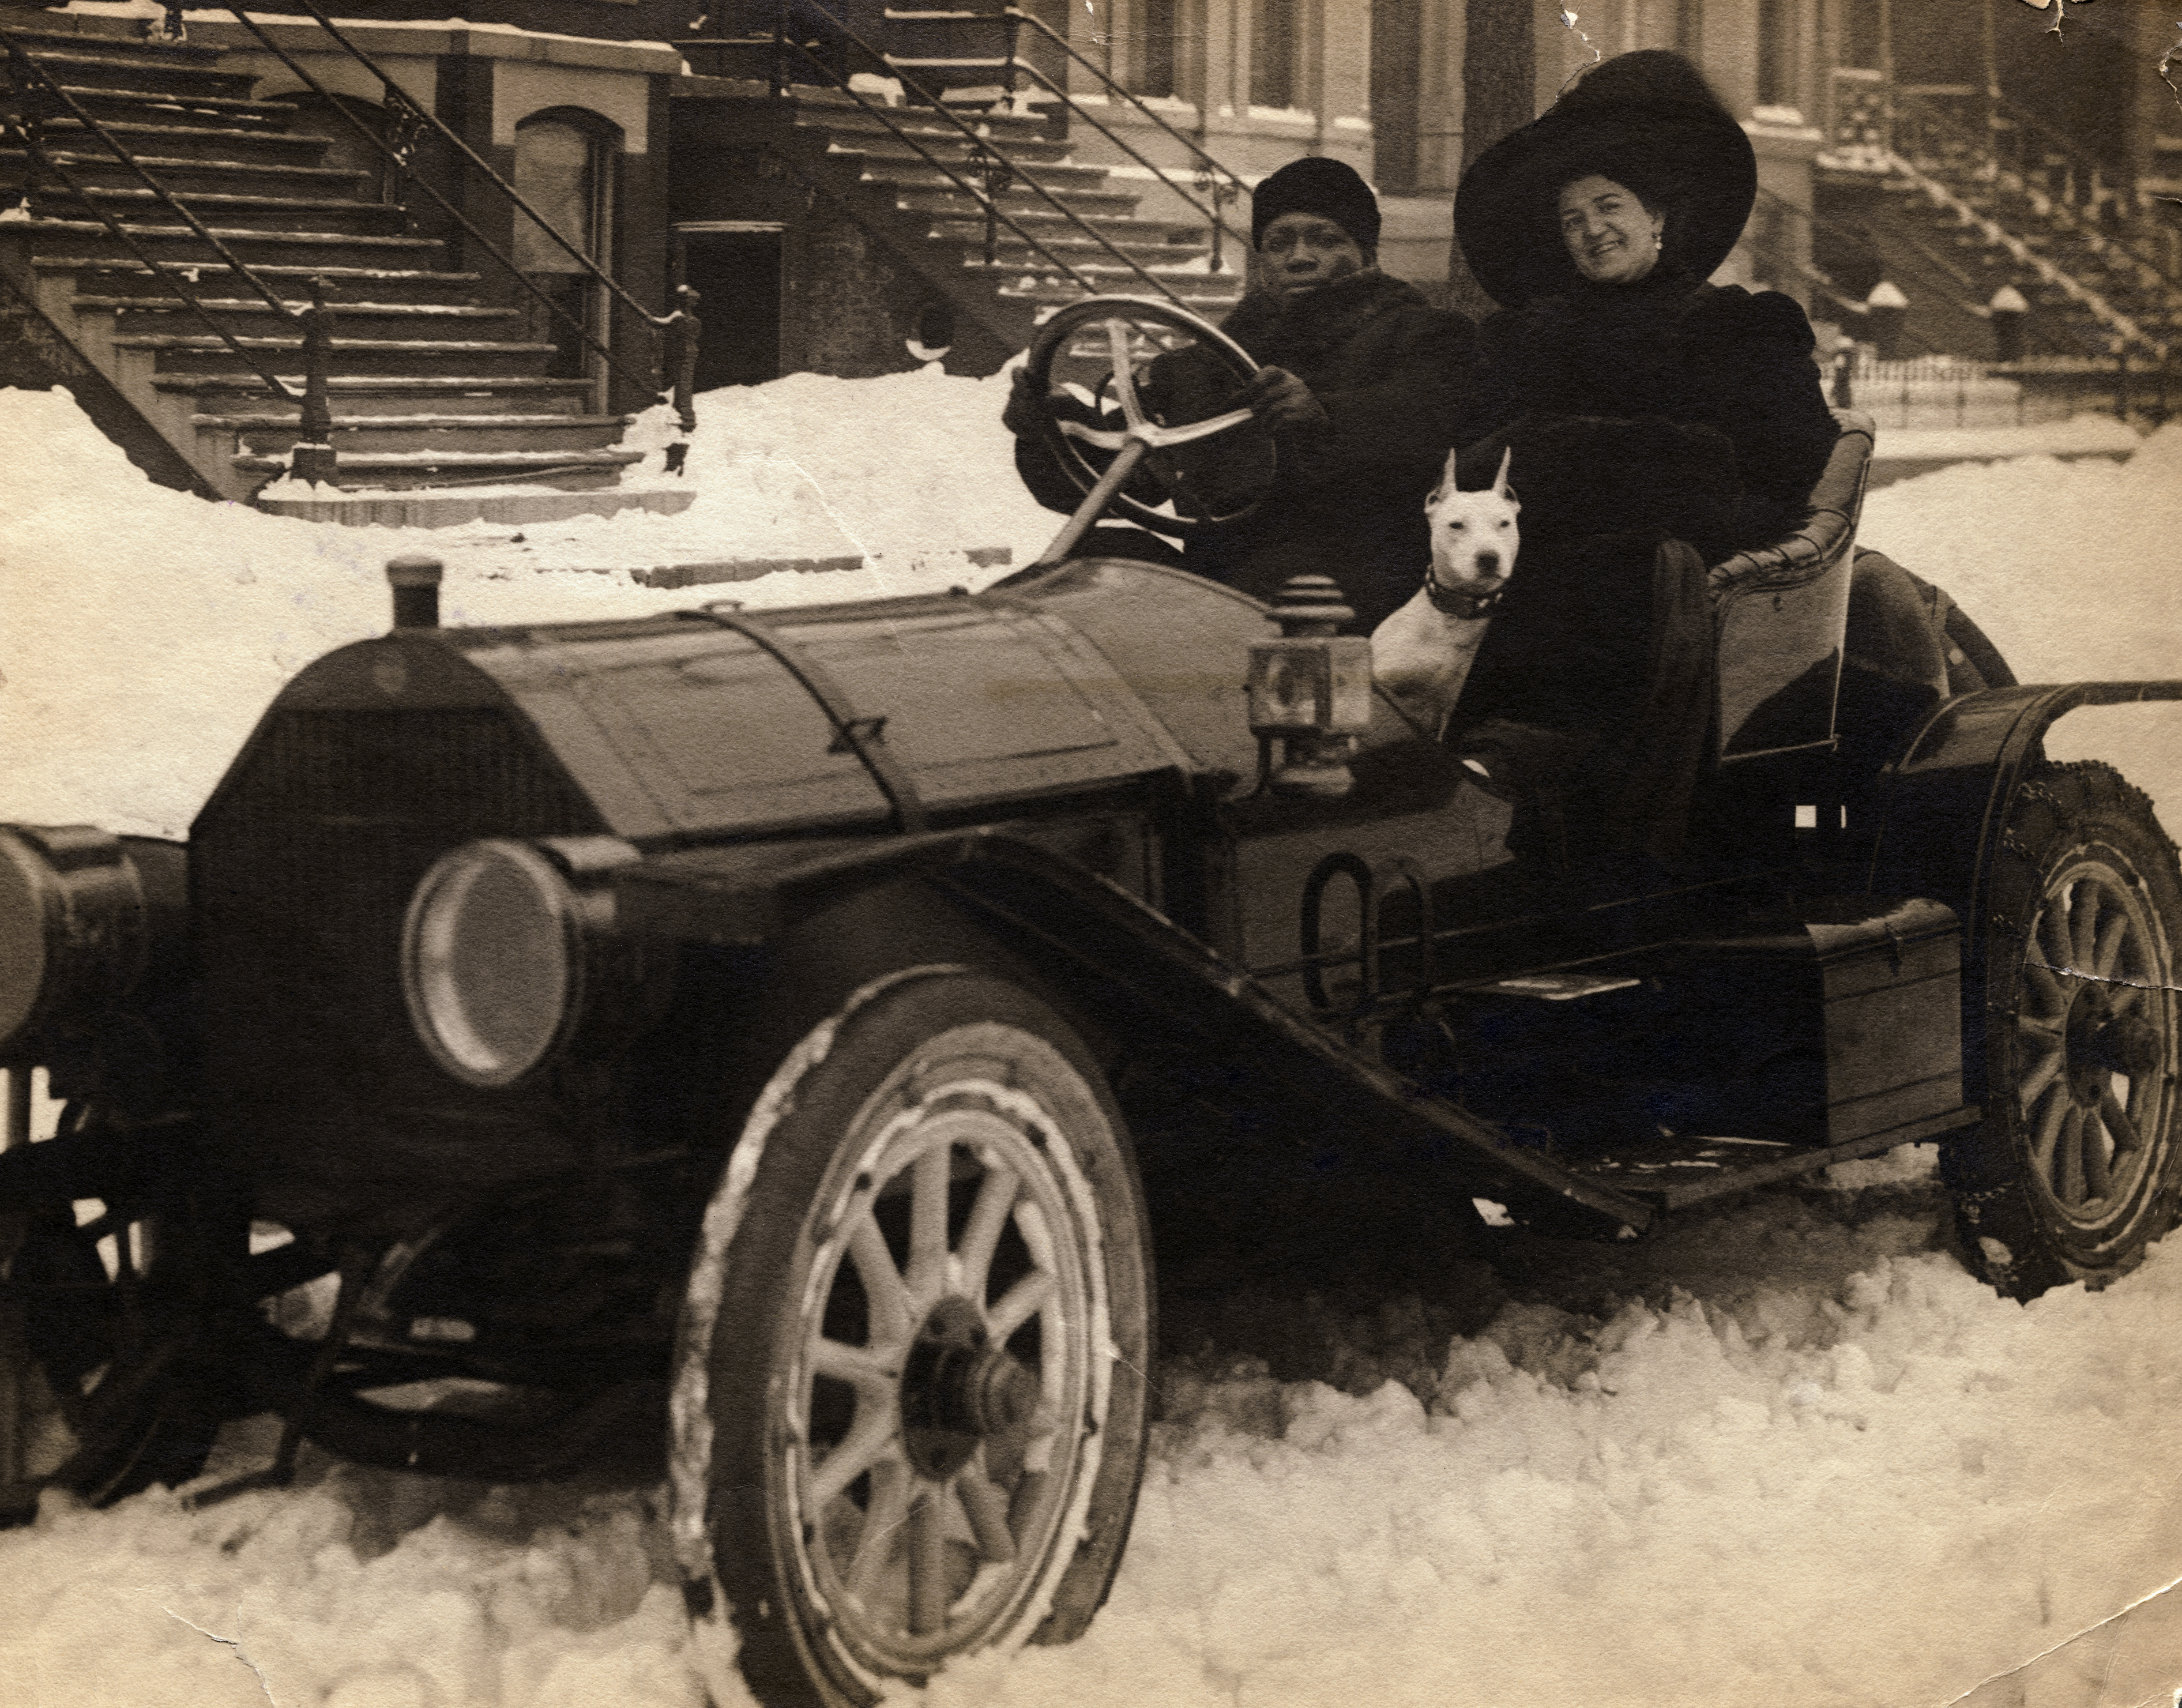 Jack Johnson sits next to his wife, who wears a large hat, in a car that is parked in the snow. They are accompanied by a dog.